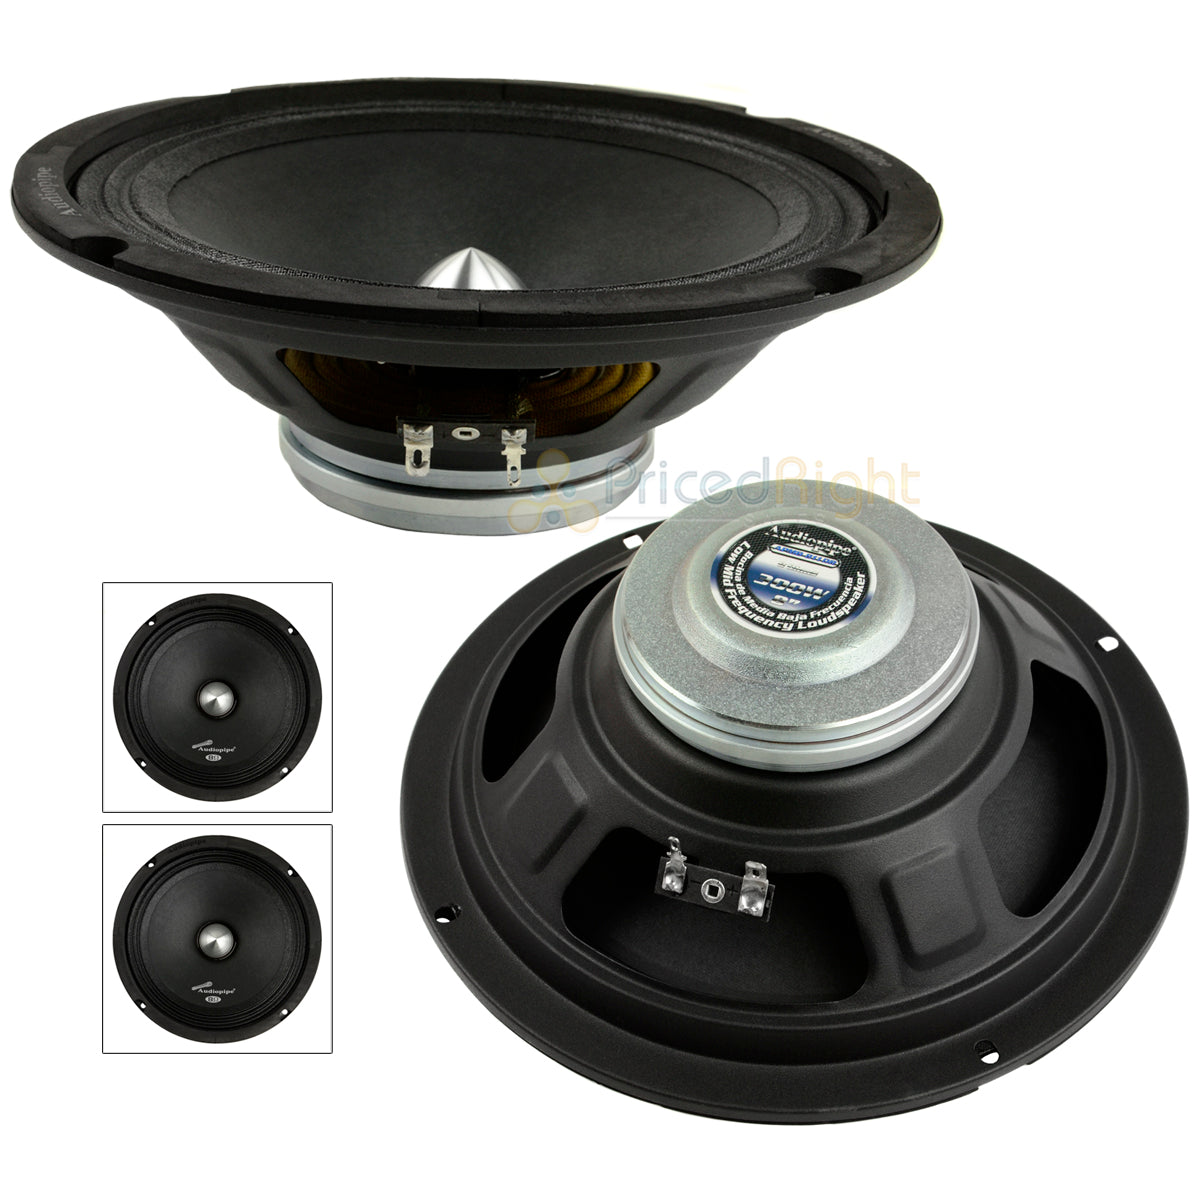 "2 Audiopipe 8"" 300W Low Mid Frequency Loudspeakers APMB-811DR Audio Shallow Pair"